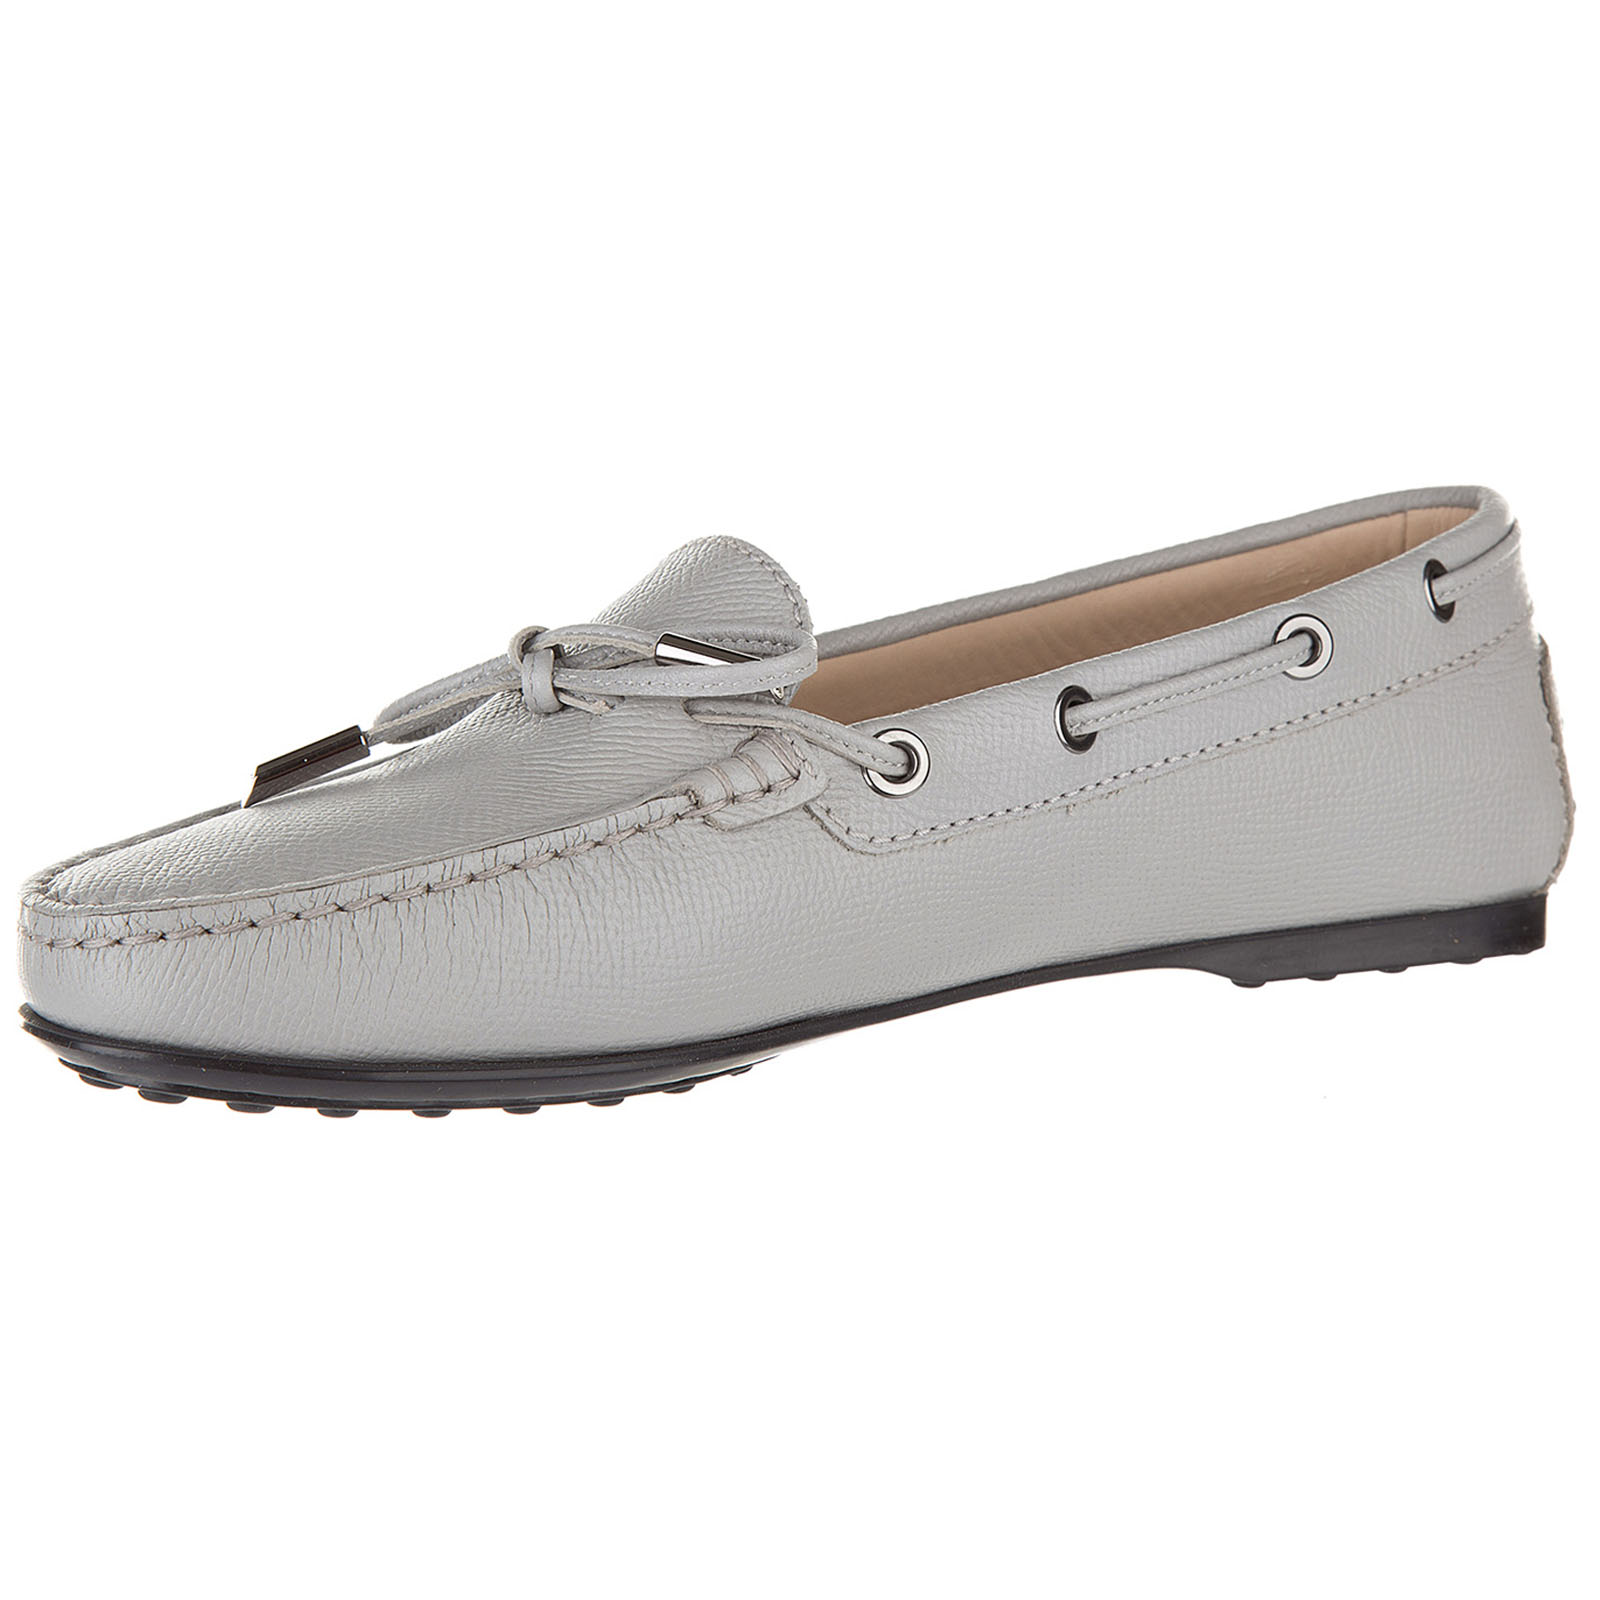 Women's leather loafers moccasins  gomma laccetto occhielli